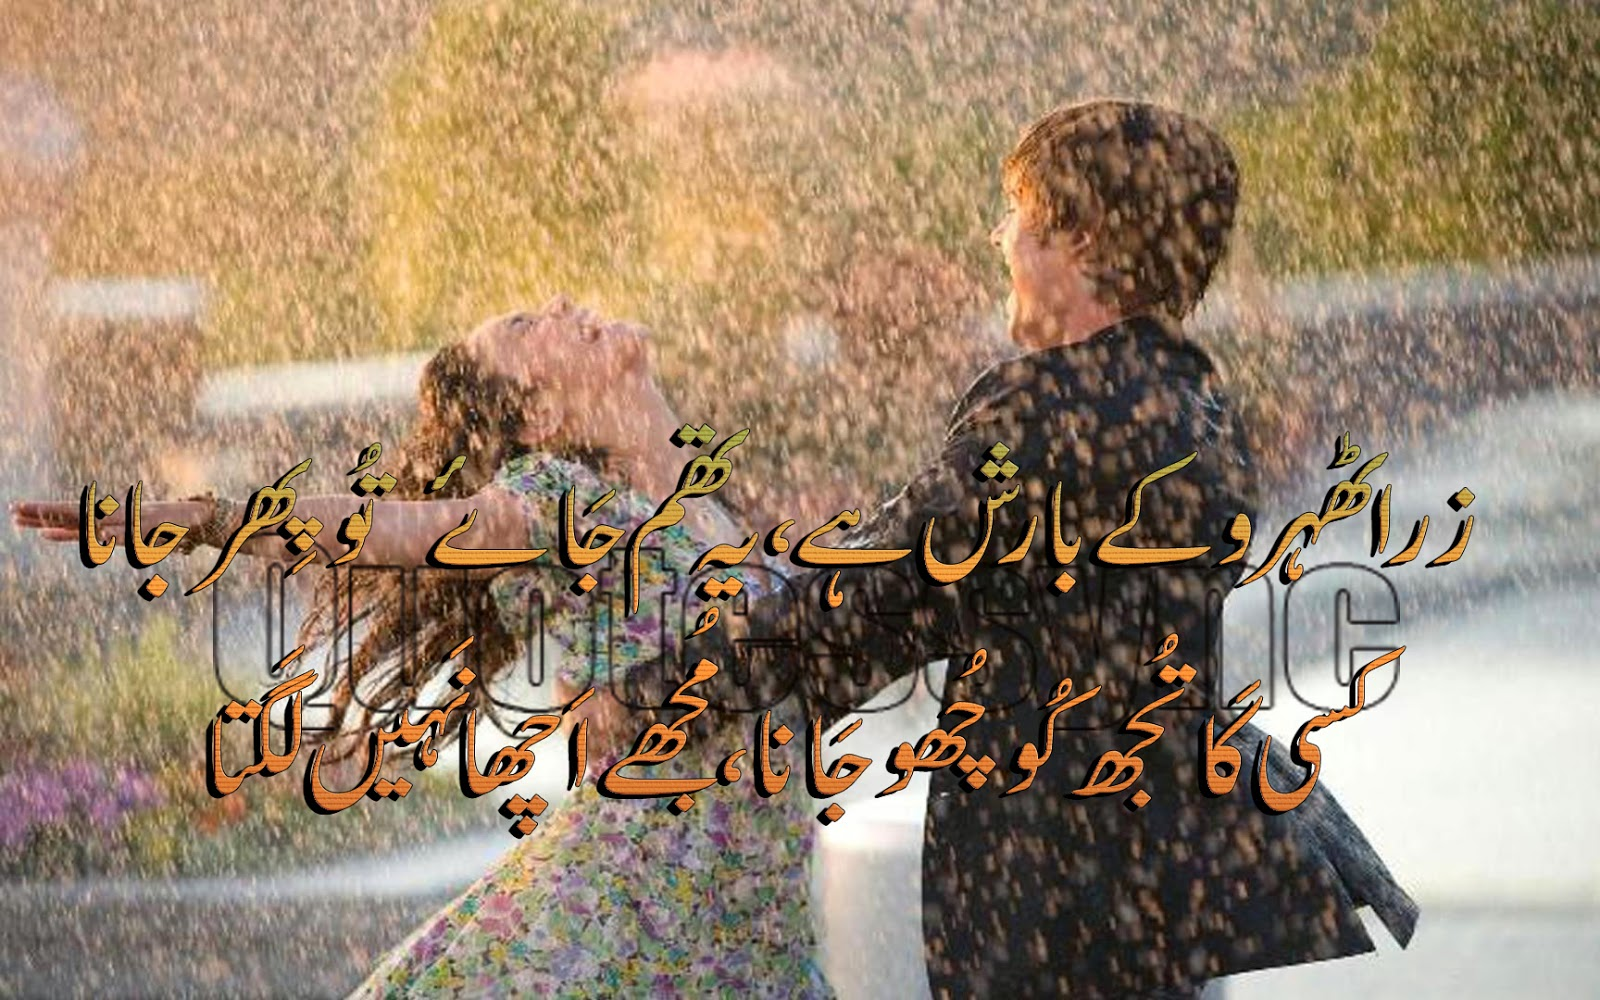 Rainy Day Sms With Images